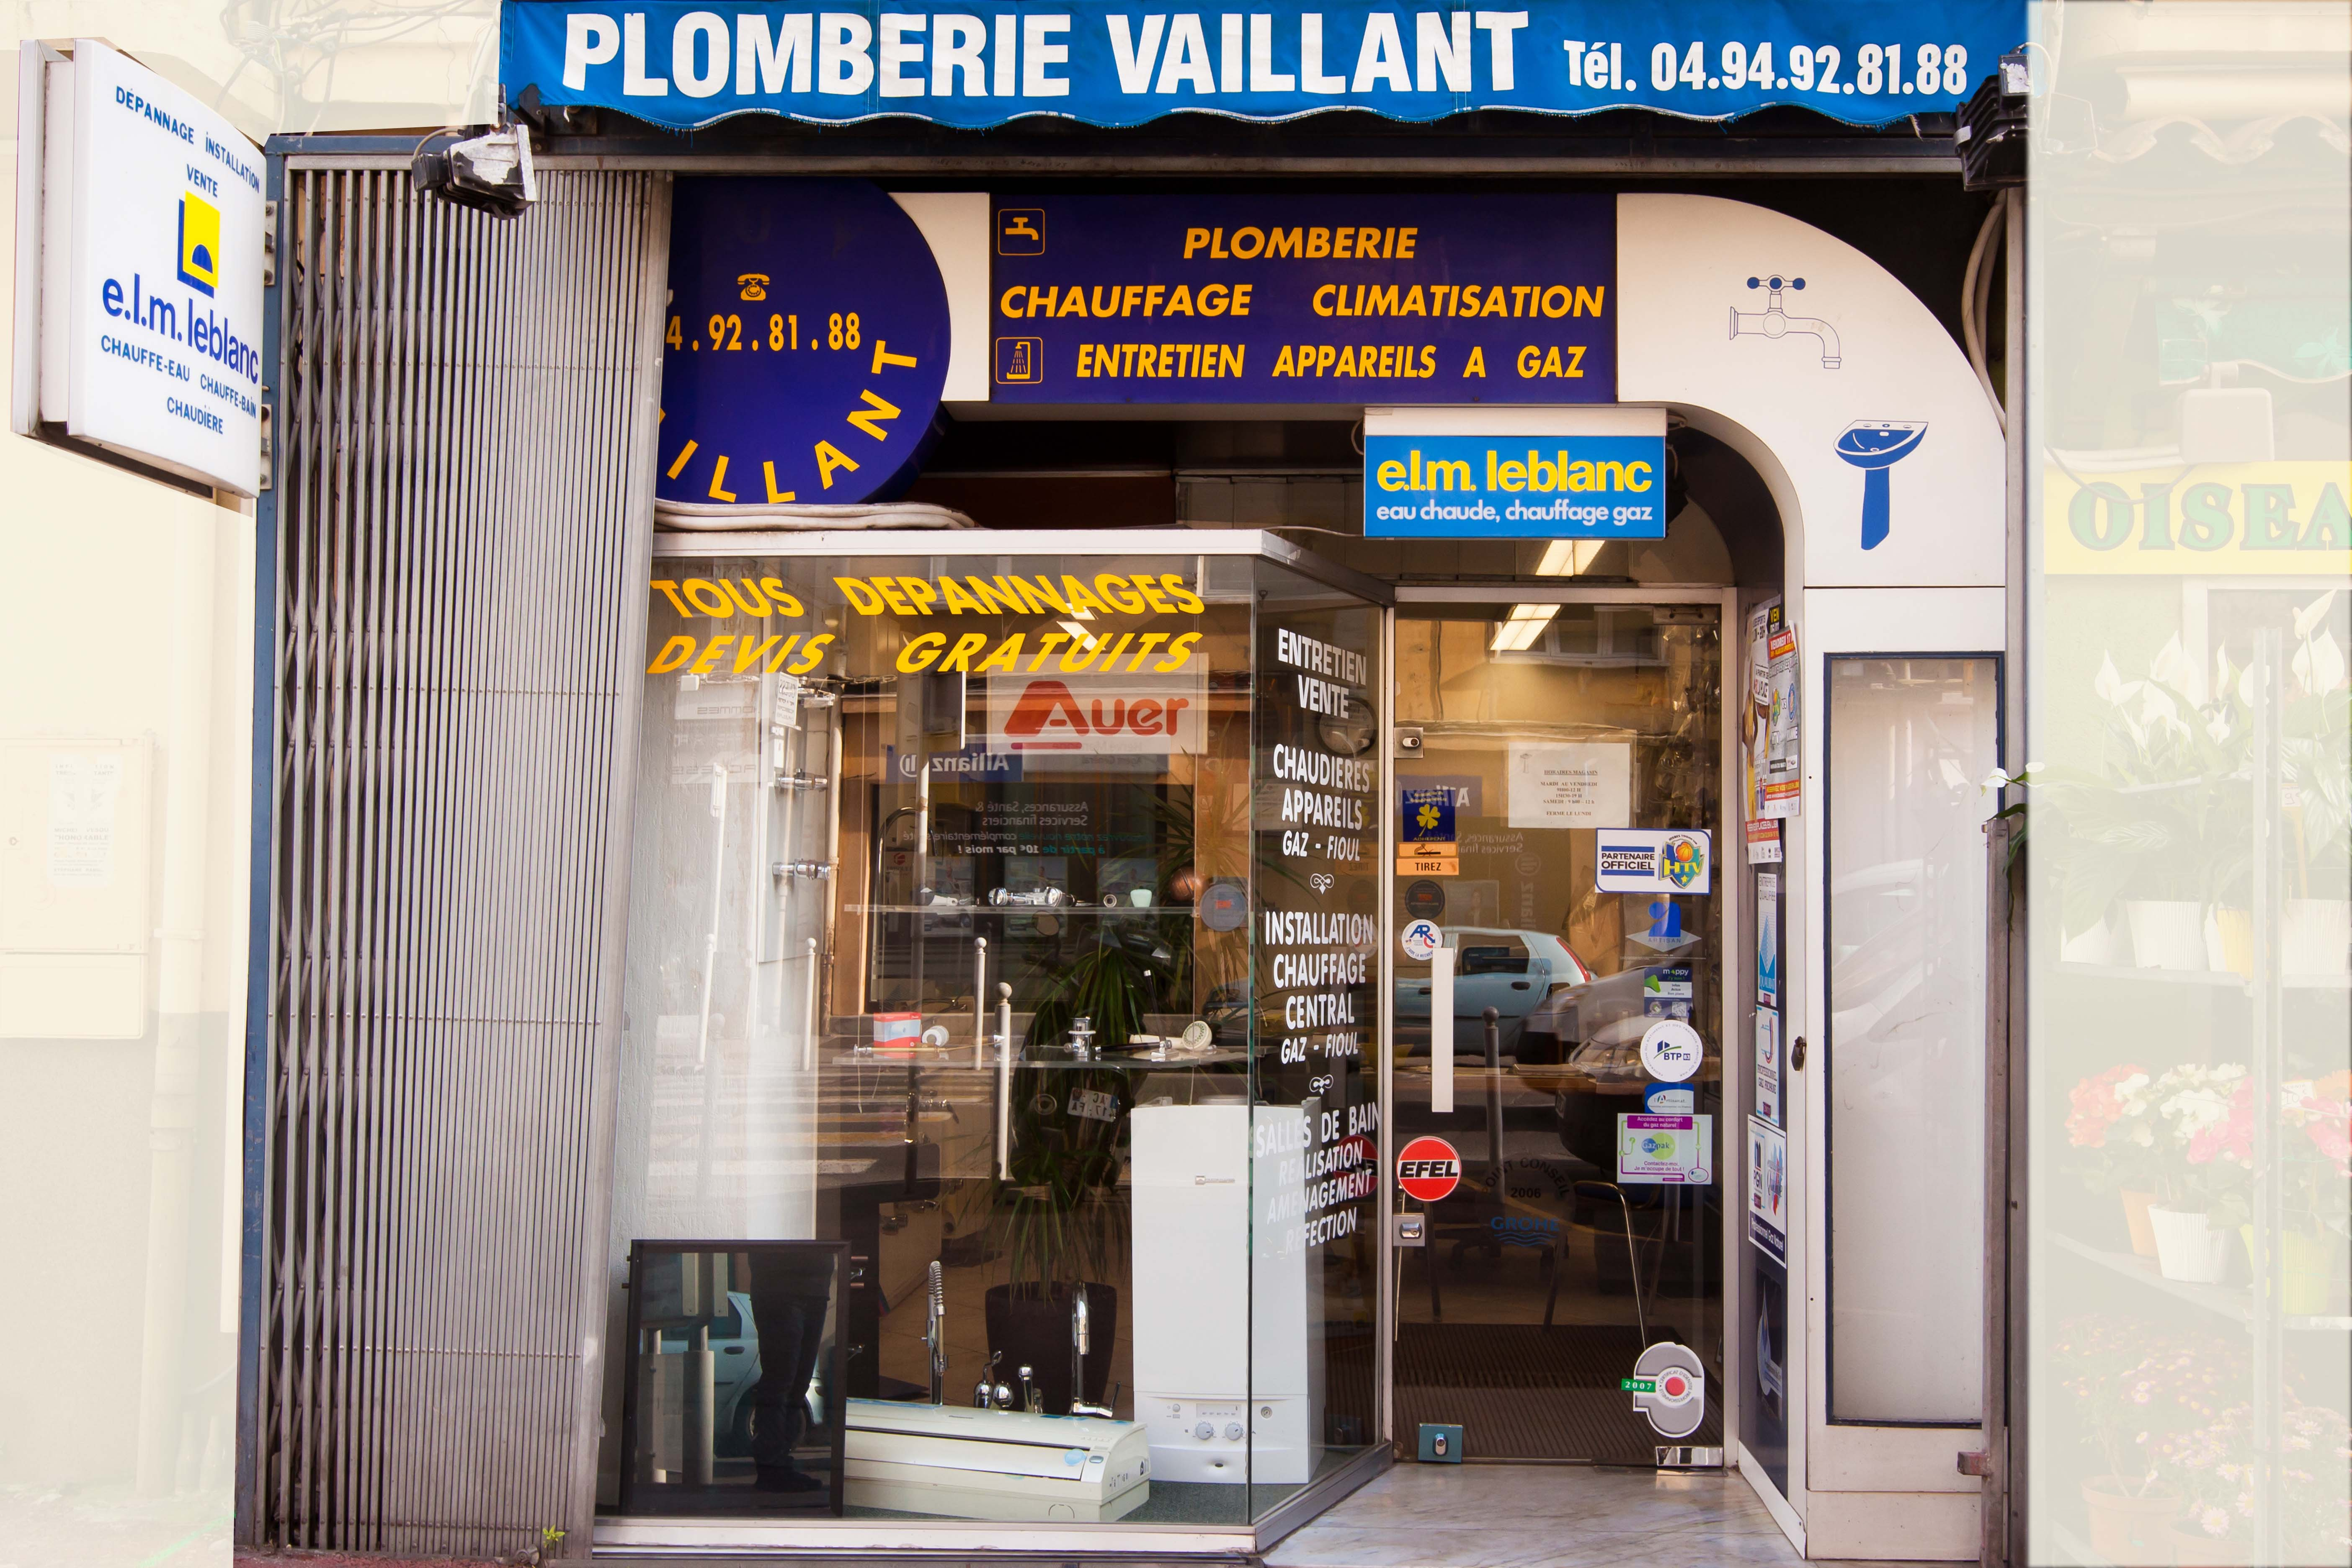 Plomberie VAILLANT